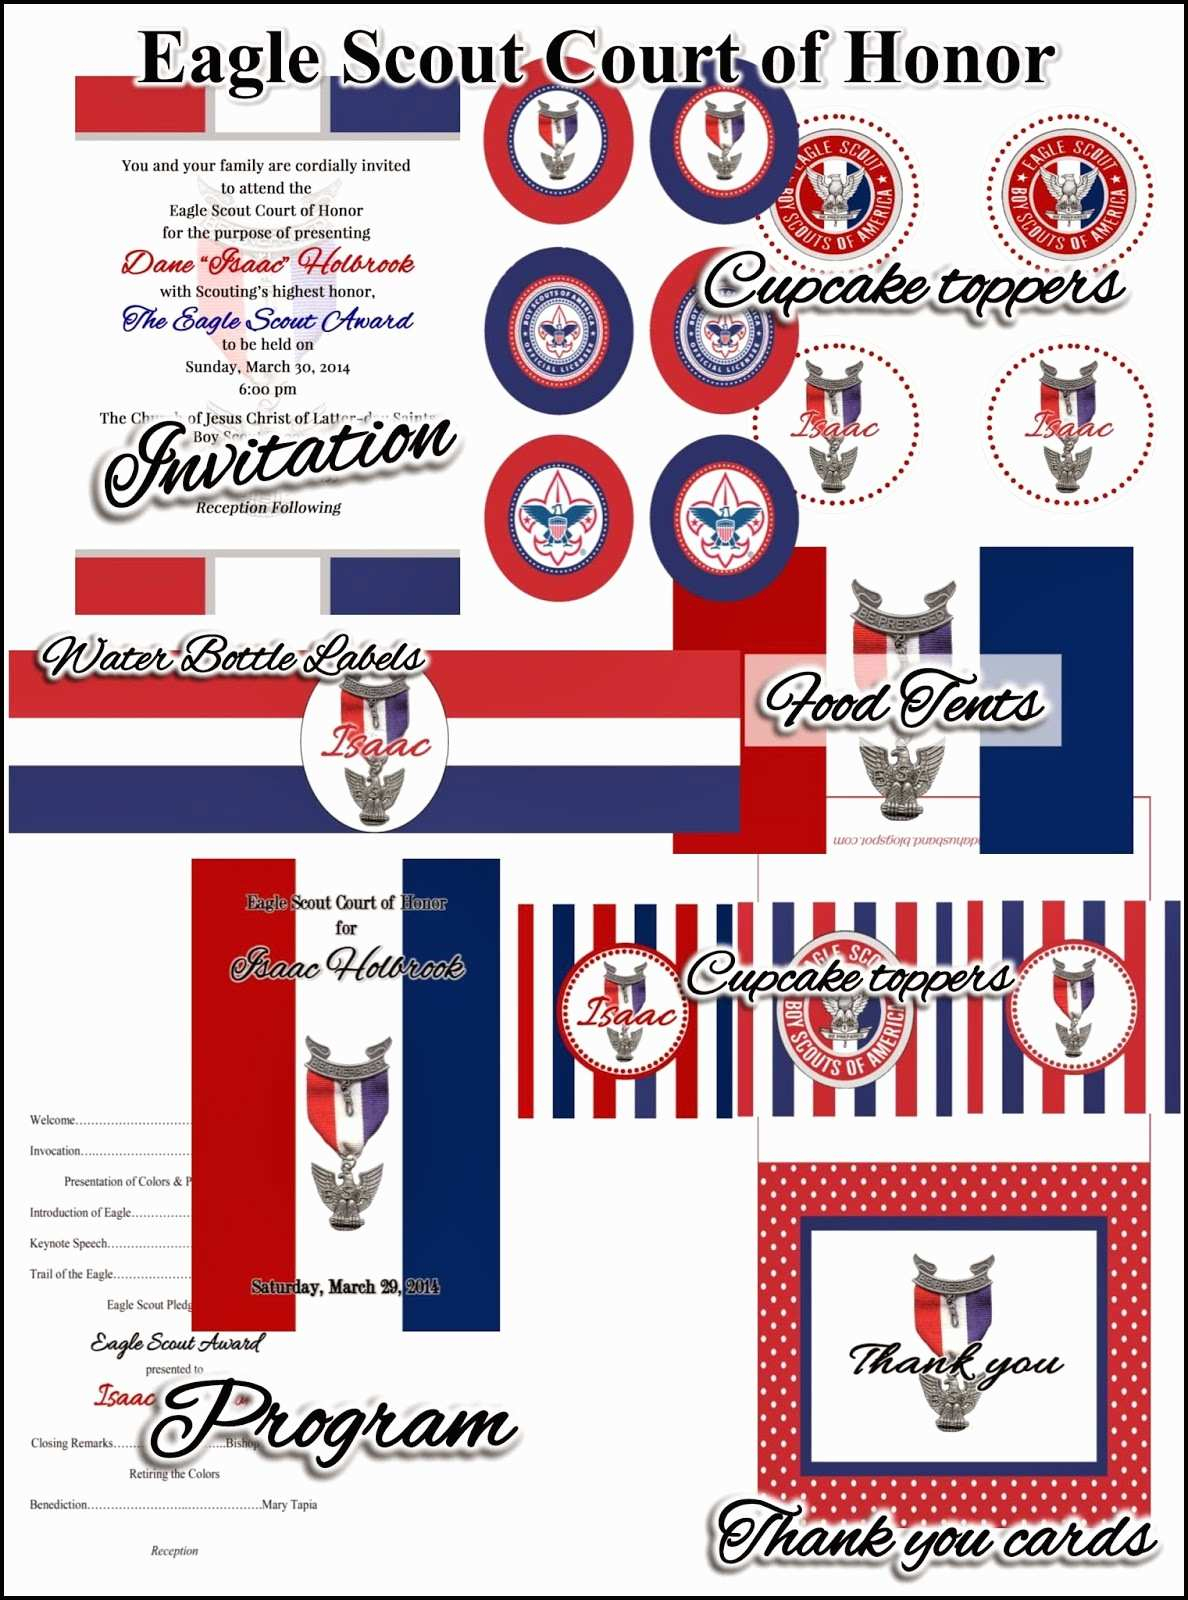 Eagle Scout Cards Free Printable Pleasant Printable Thank You Card - Eagle Scout Cards Free Printable